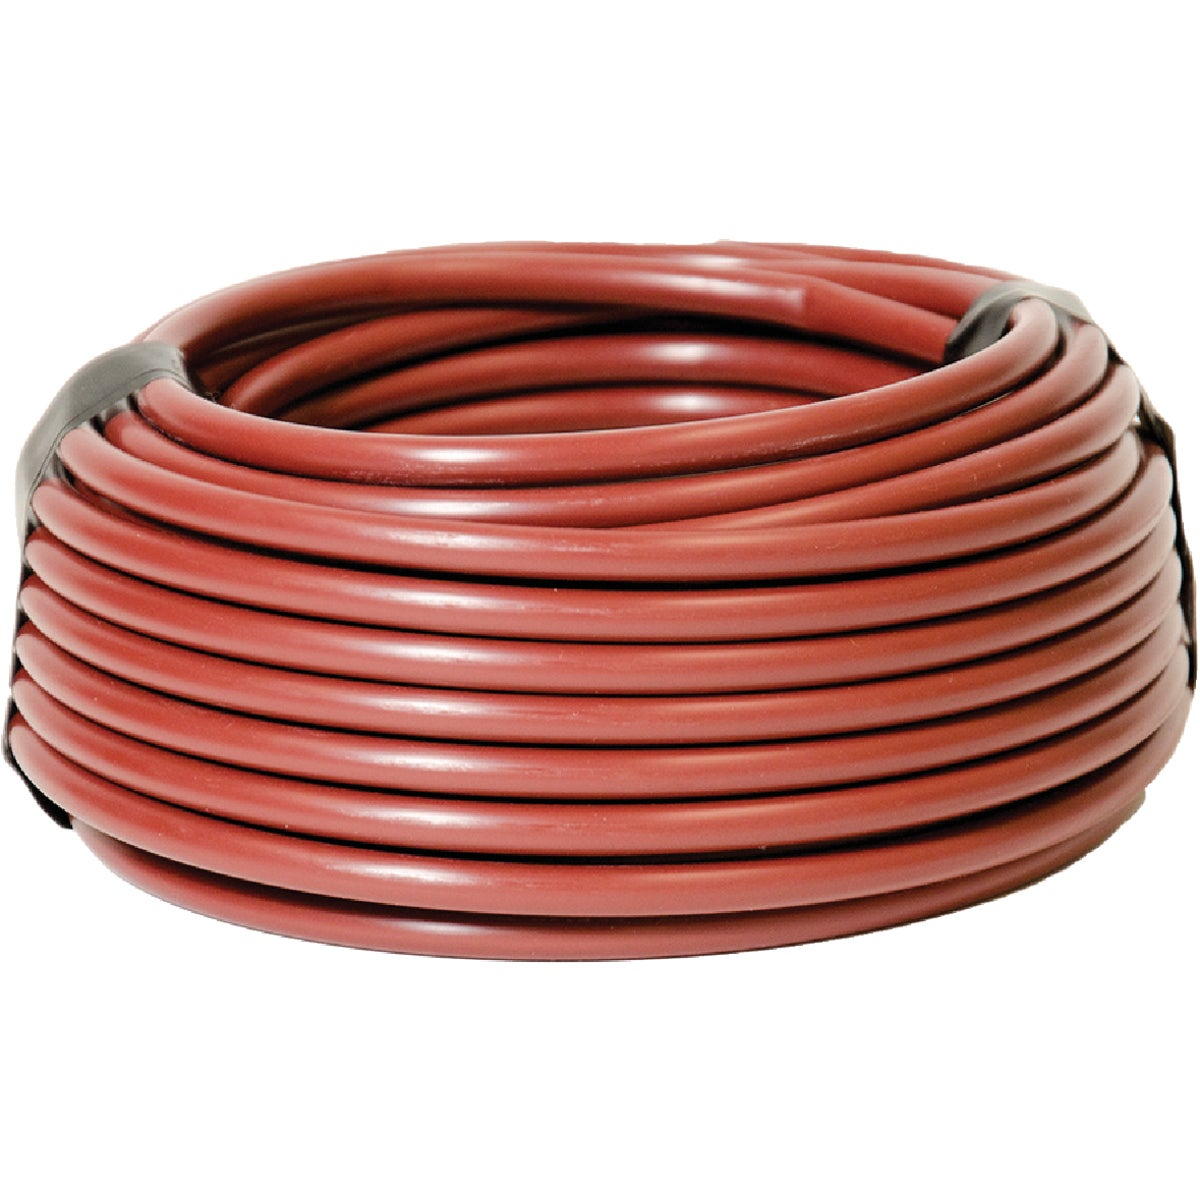 "1/4"" 50' REDWOOD TUBING - R251DT by Raindrip Inc"